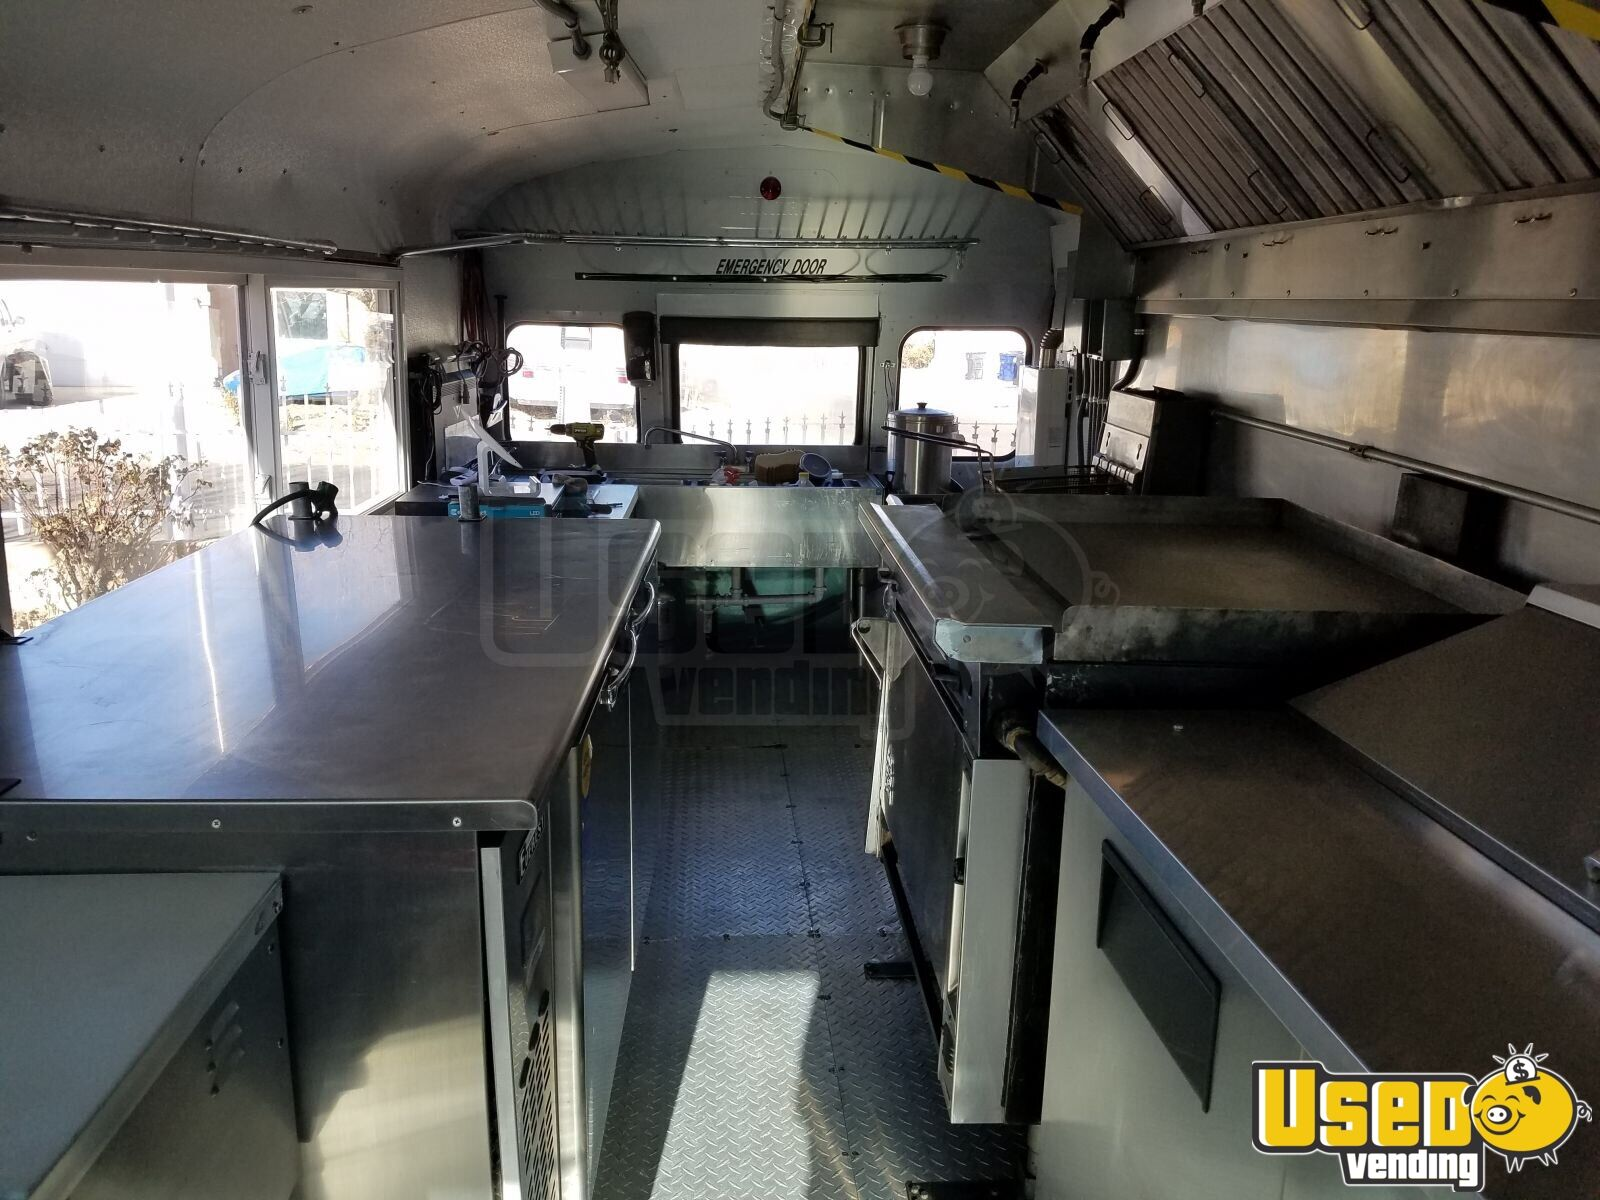 International 3600 Mobile Kitchen Food Truck / Bus for Sale in New Mexico - 9